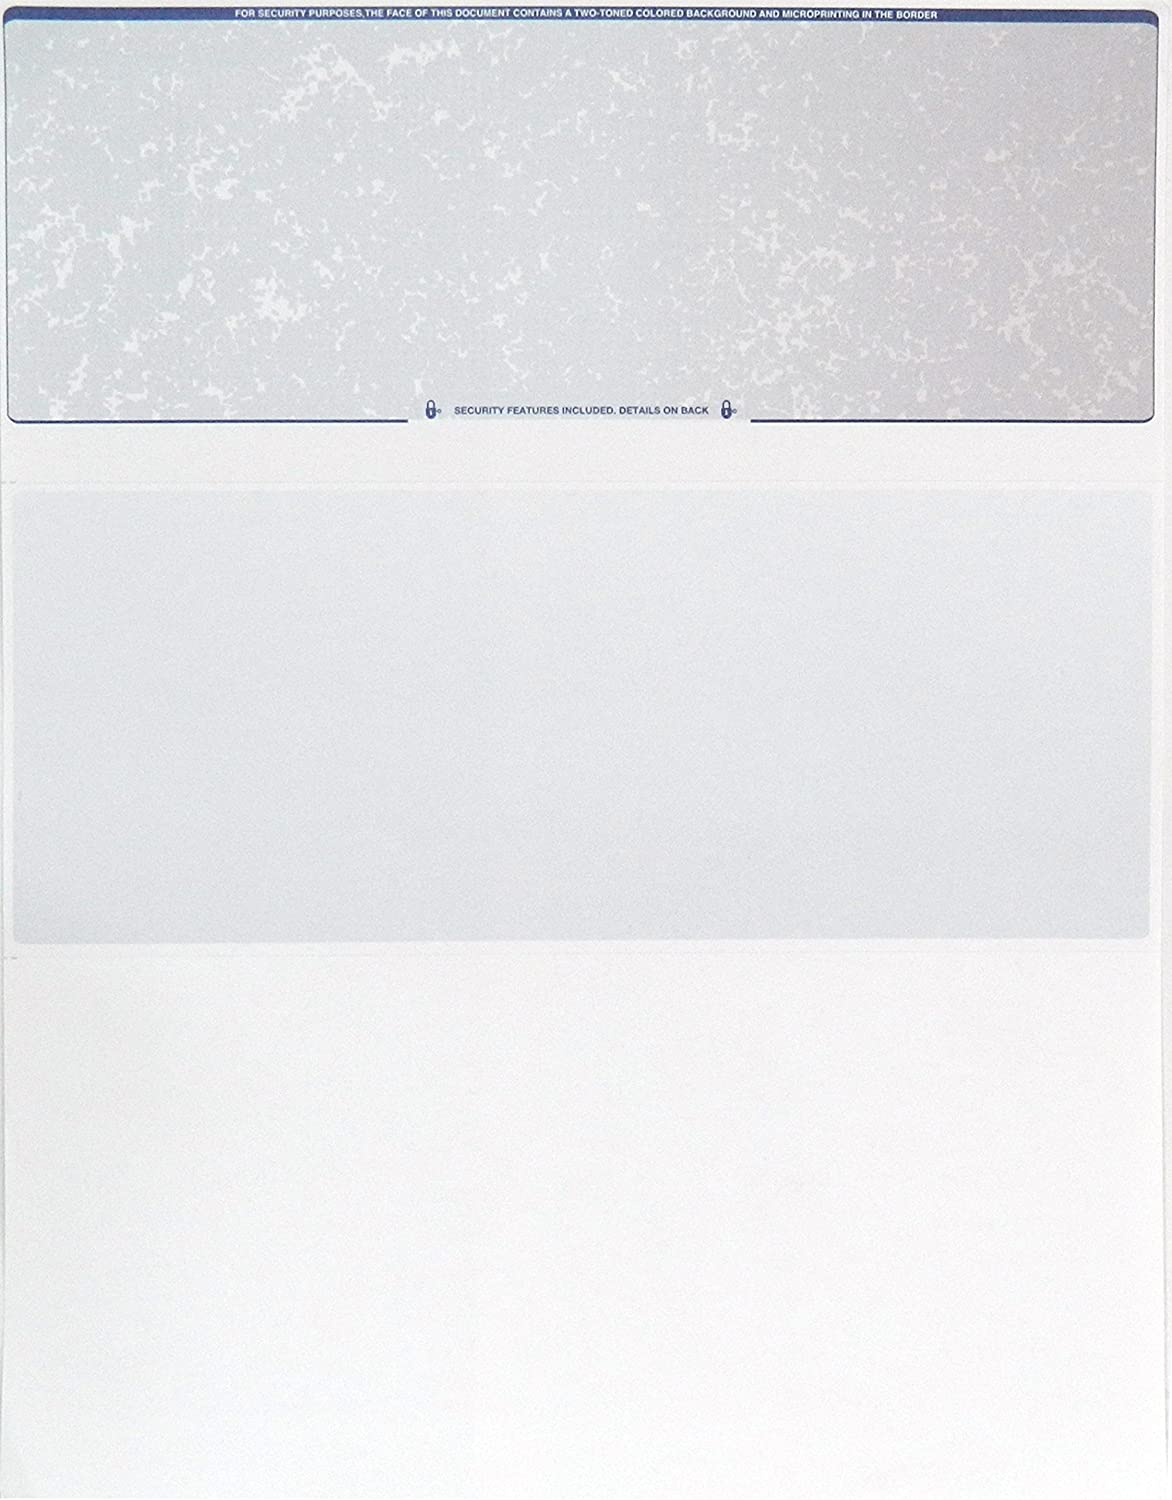 Endoc Computer Check Paper - 50 Pack - Blank Stock Check on Top and Stub on Bottom - Security Features & Laser Printer Compatible for Home and Business - Blue/Red Prismatic